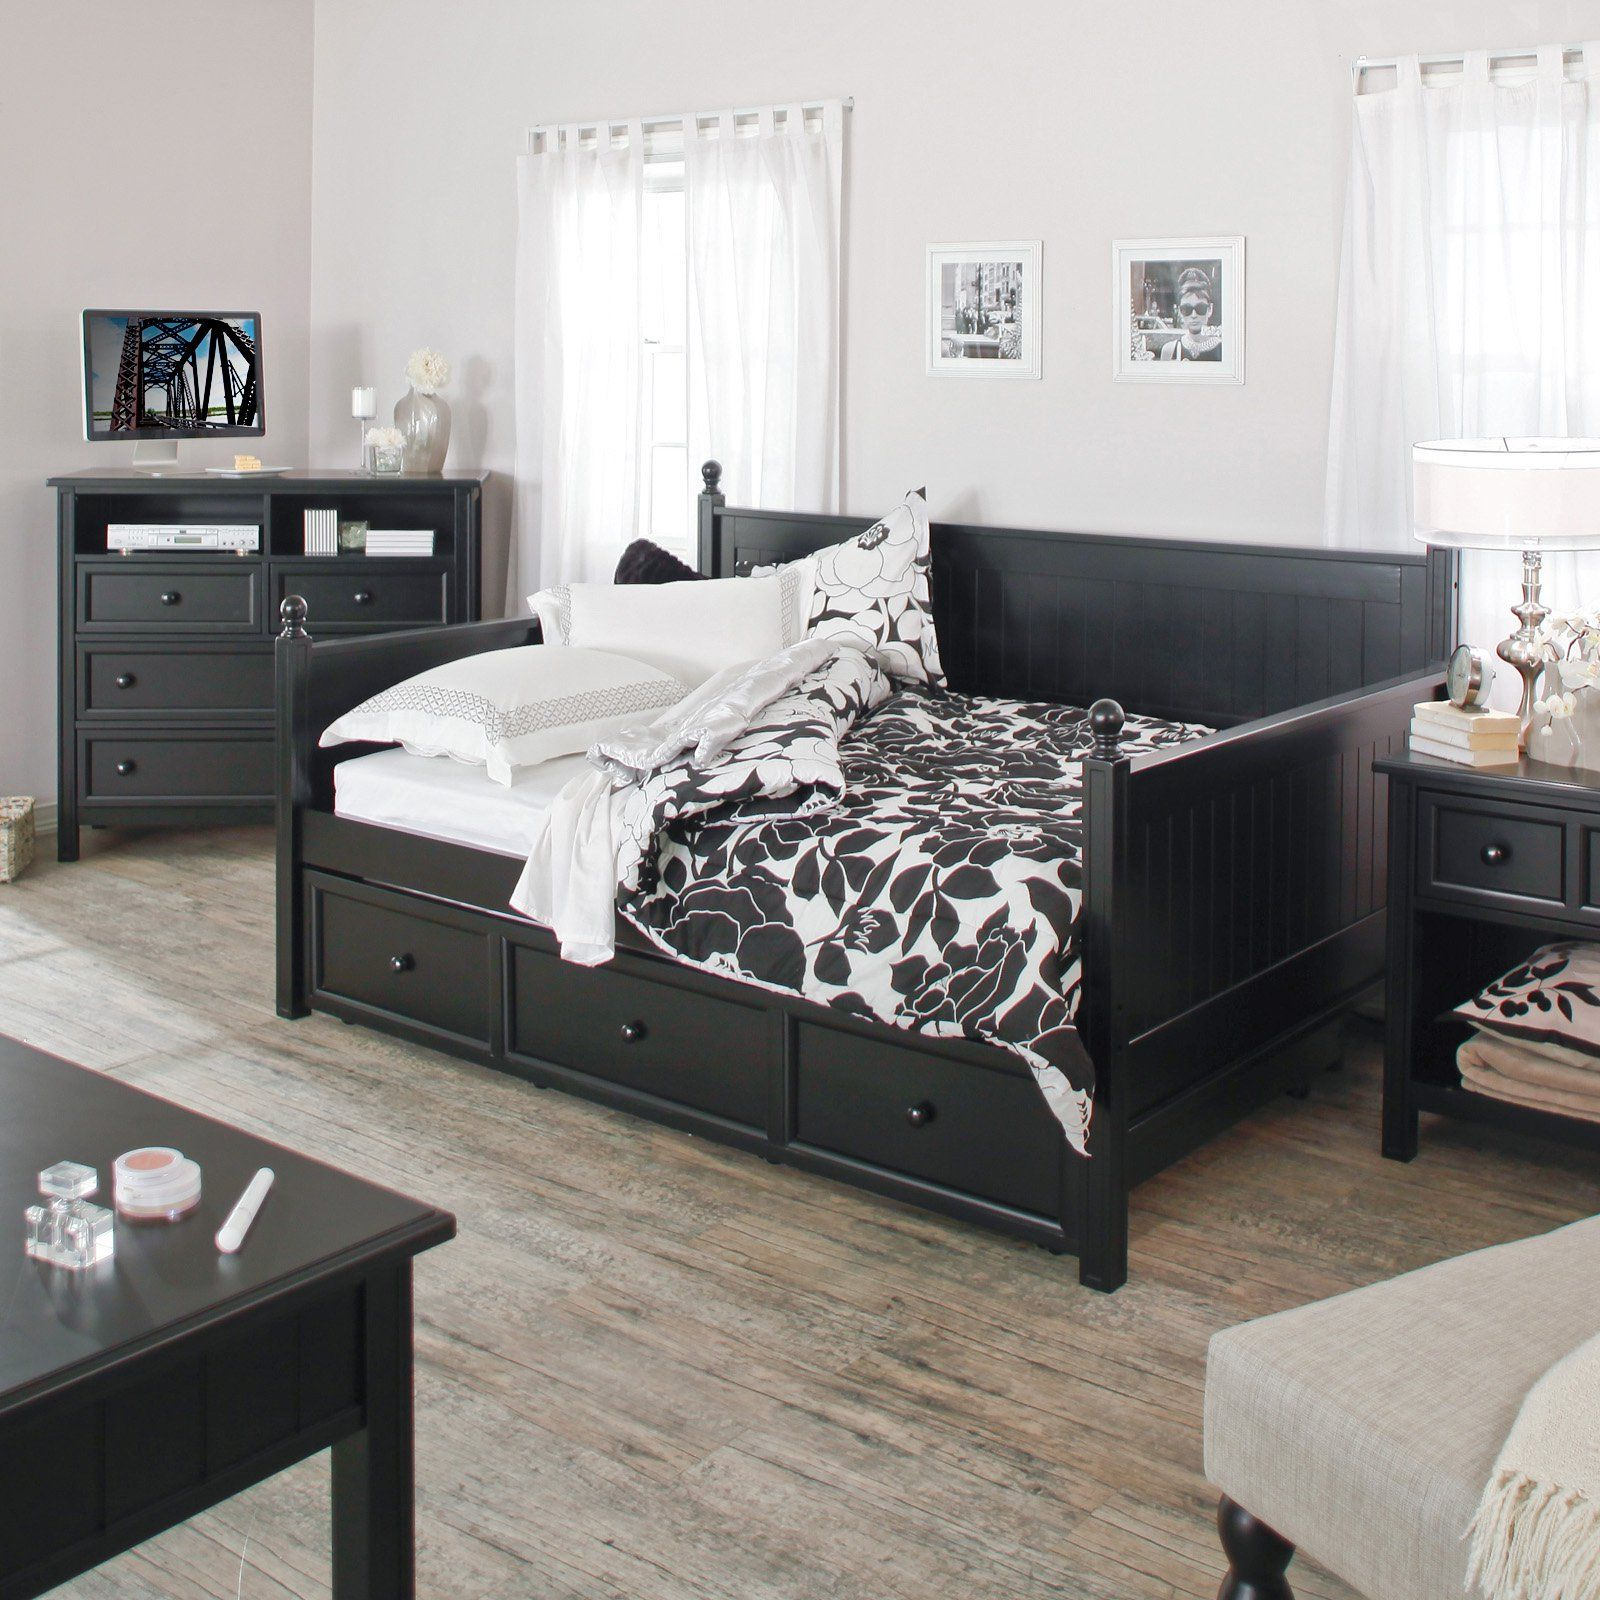 casey daybed black full you ll have plenty of room to relax casey daybed black full you ll have plenty of room to relax